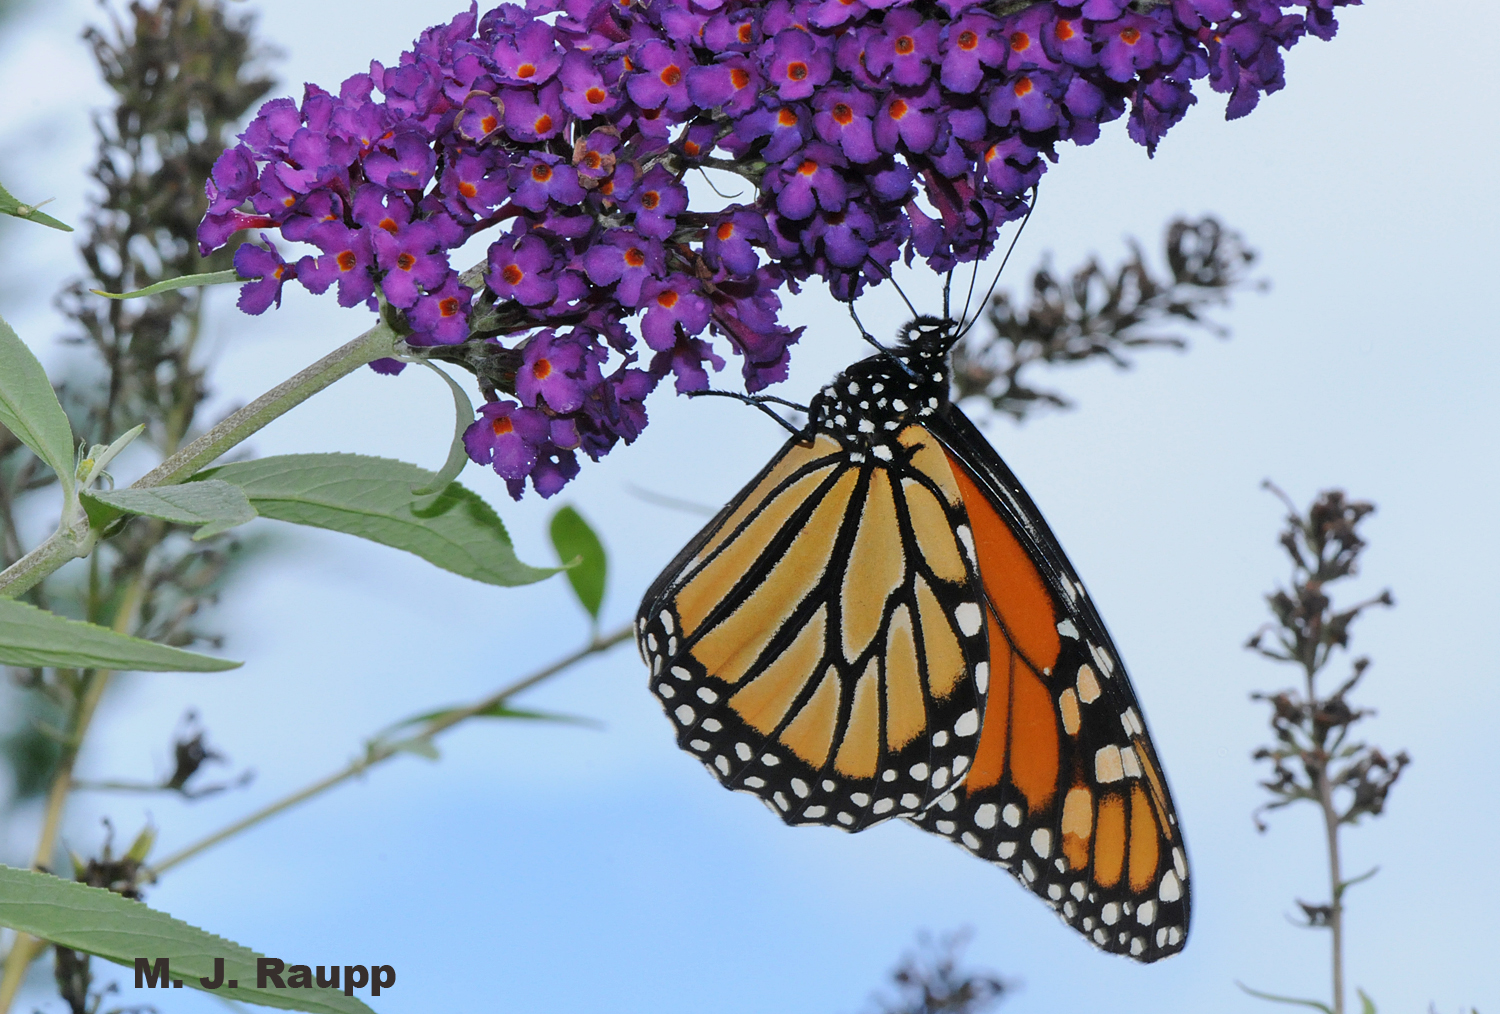 A monarch prepares to carbo-load on nectar before performing its royal tasks.